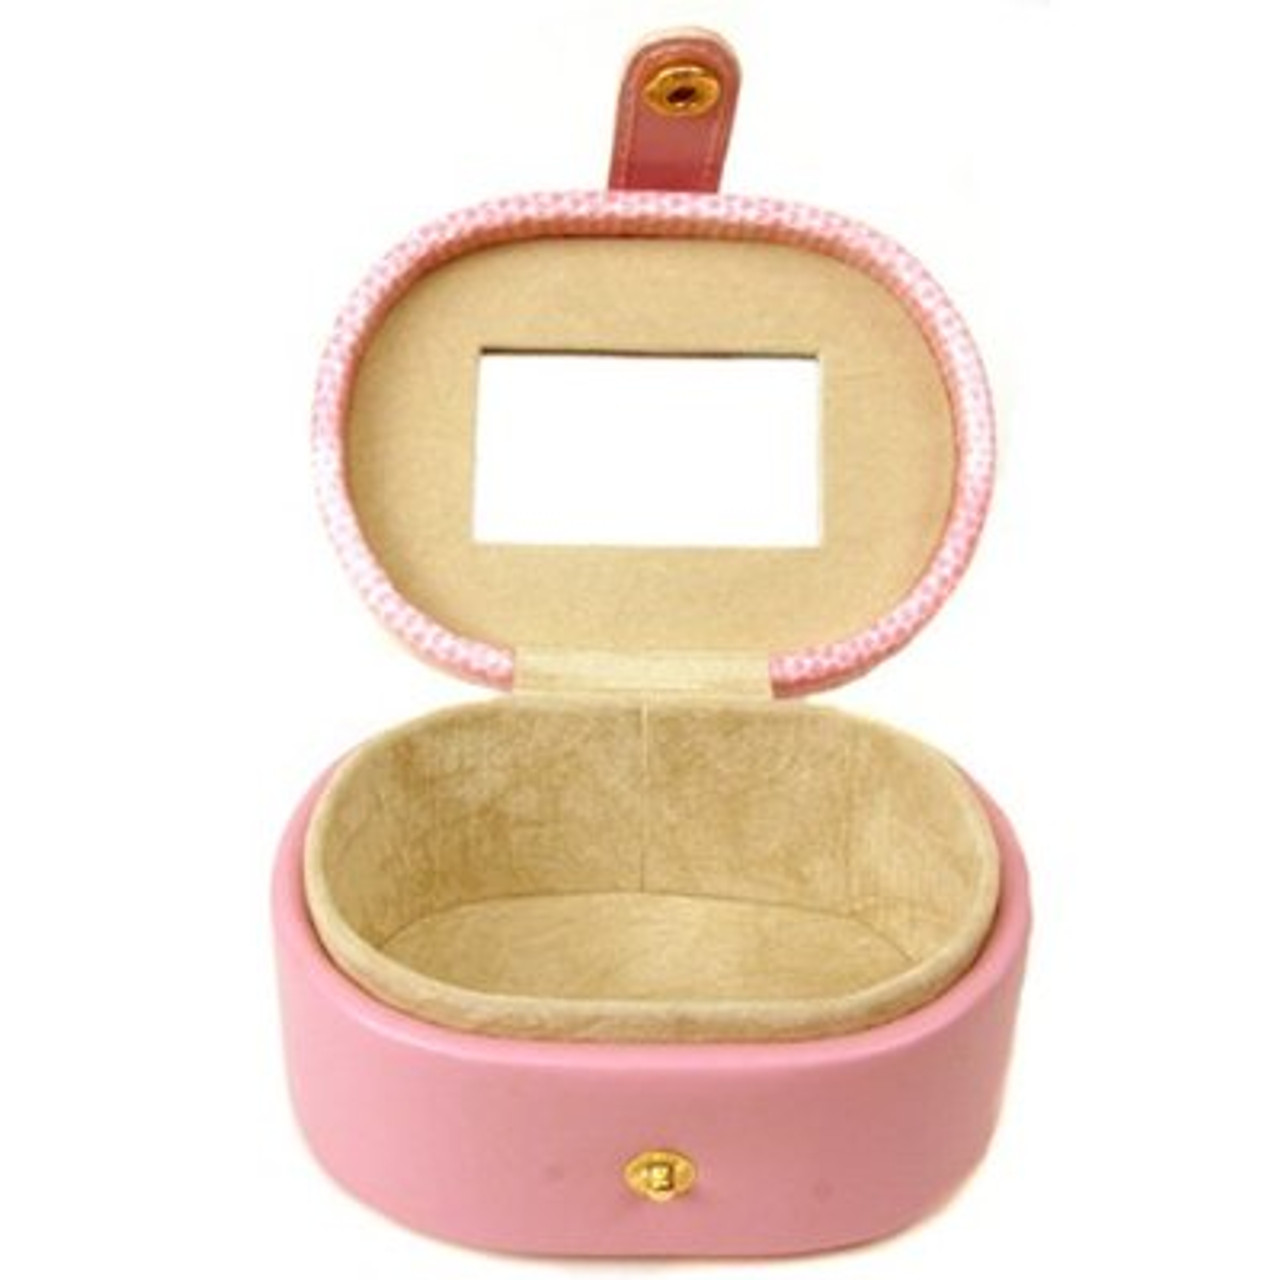 Mini Jewelry Box Case Gift for Jewelry Oval Pink Leather - Main